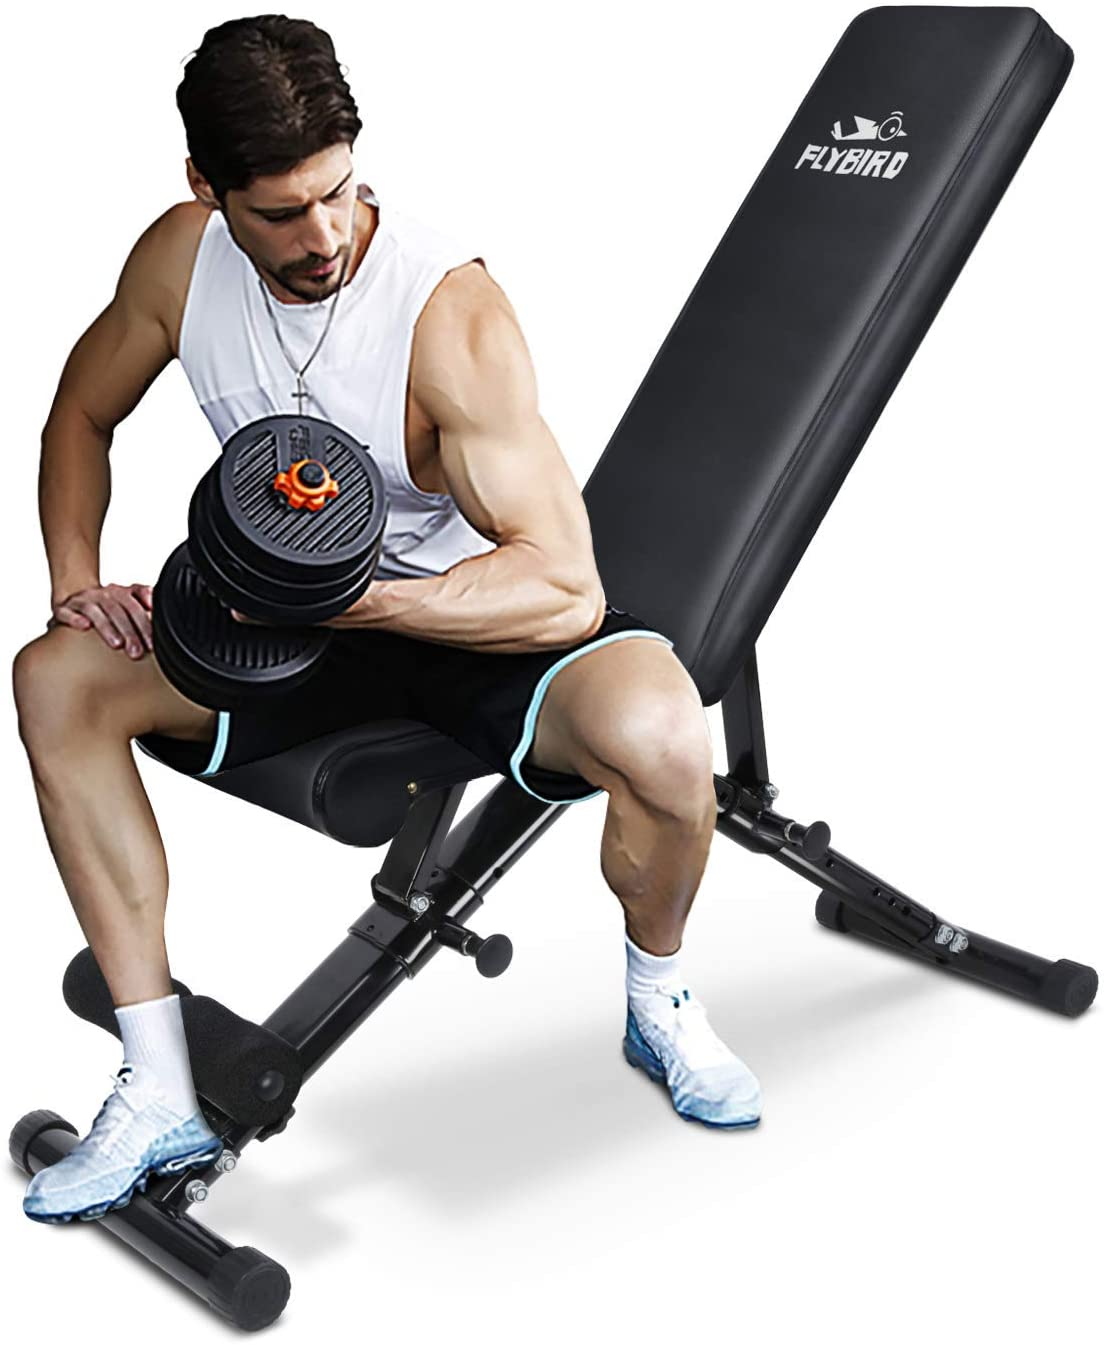 FLYBIRD Adjustable Strength Training Bench